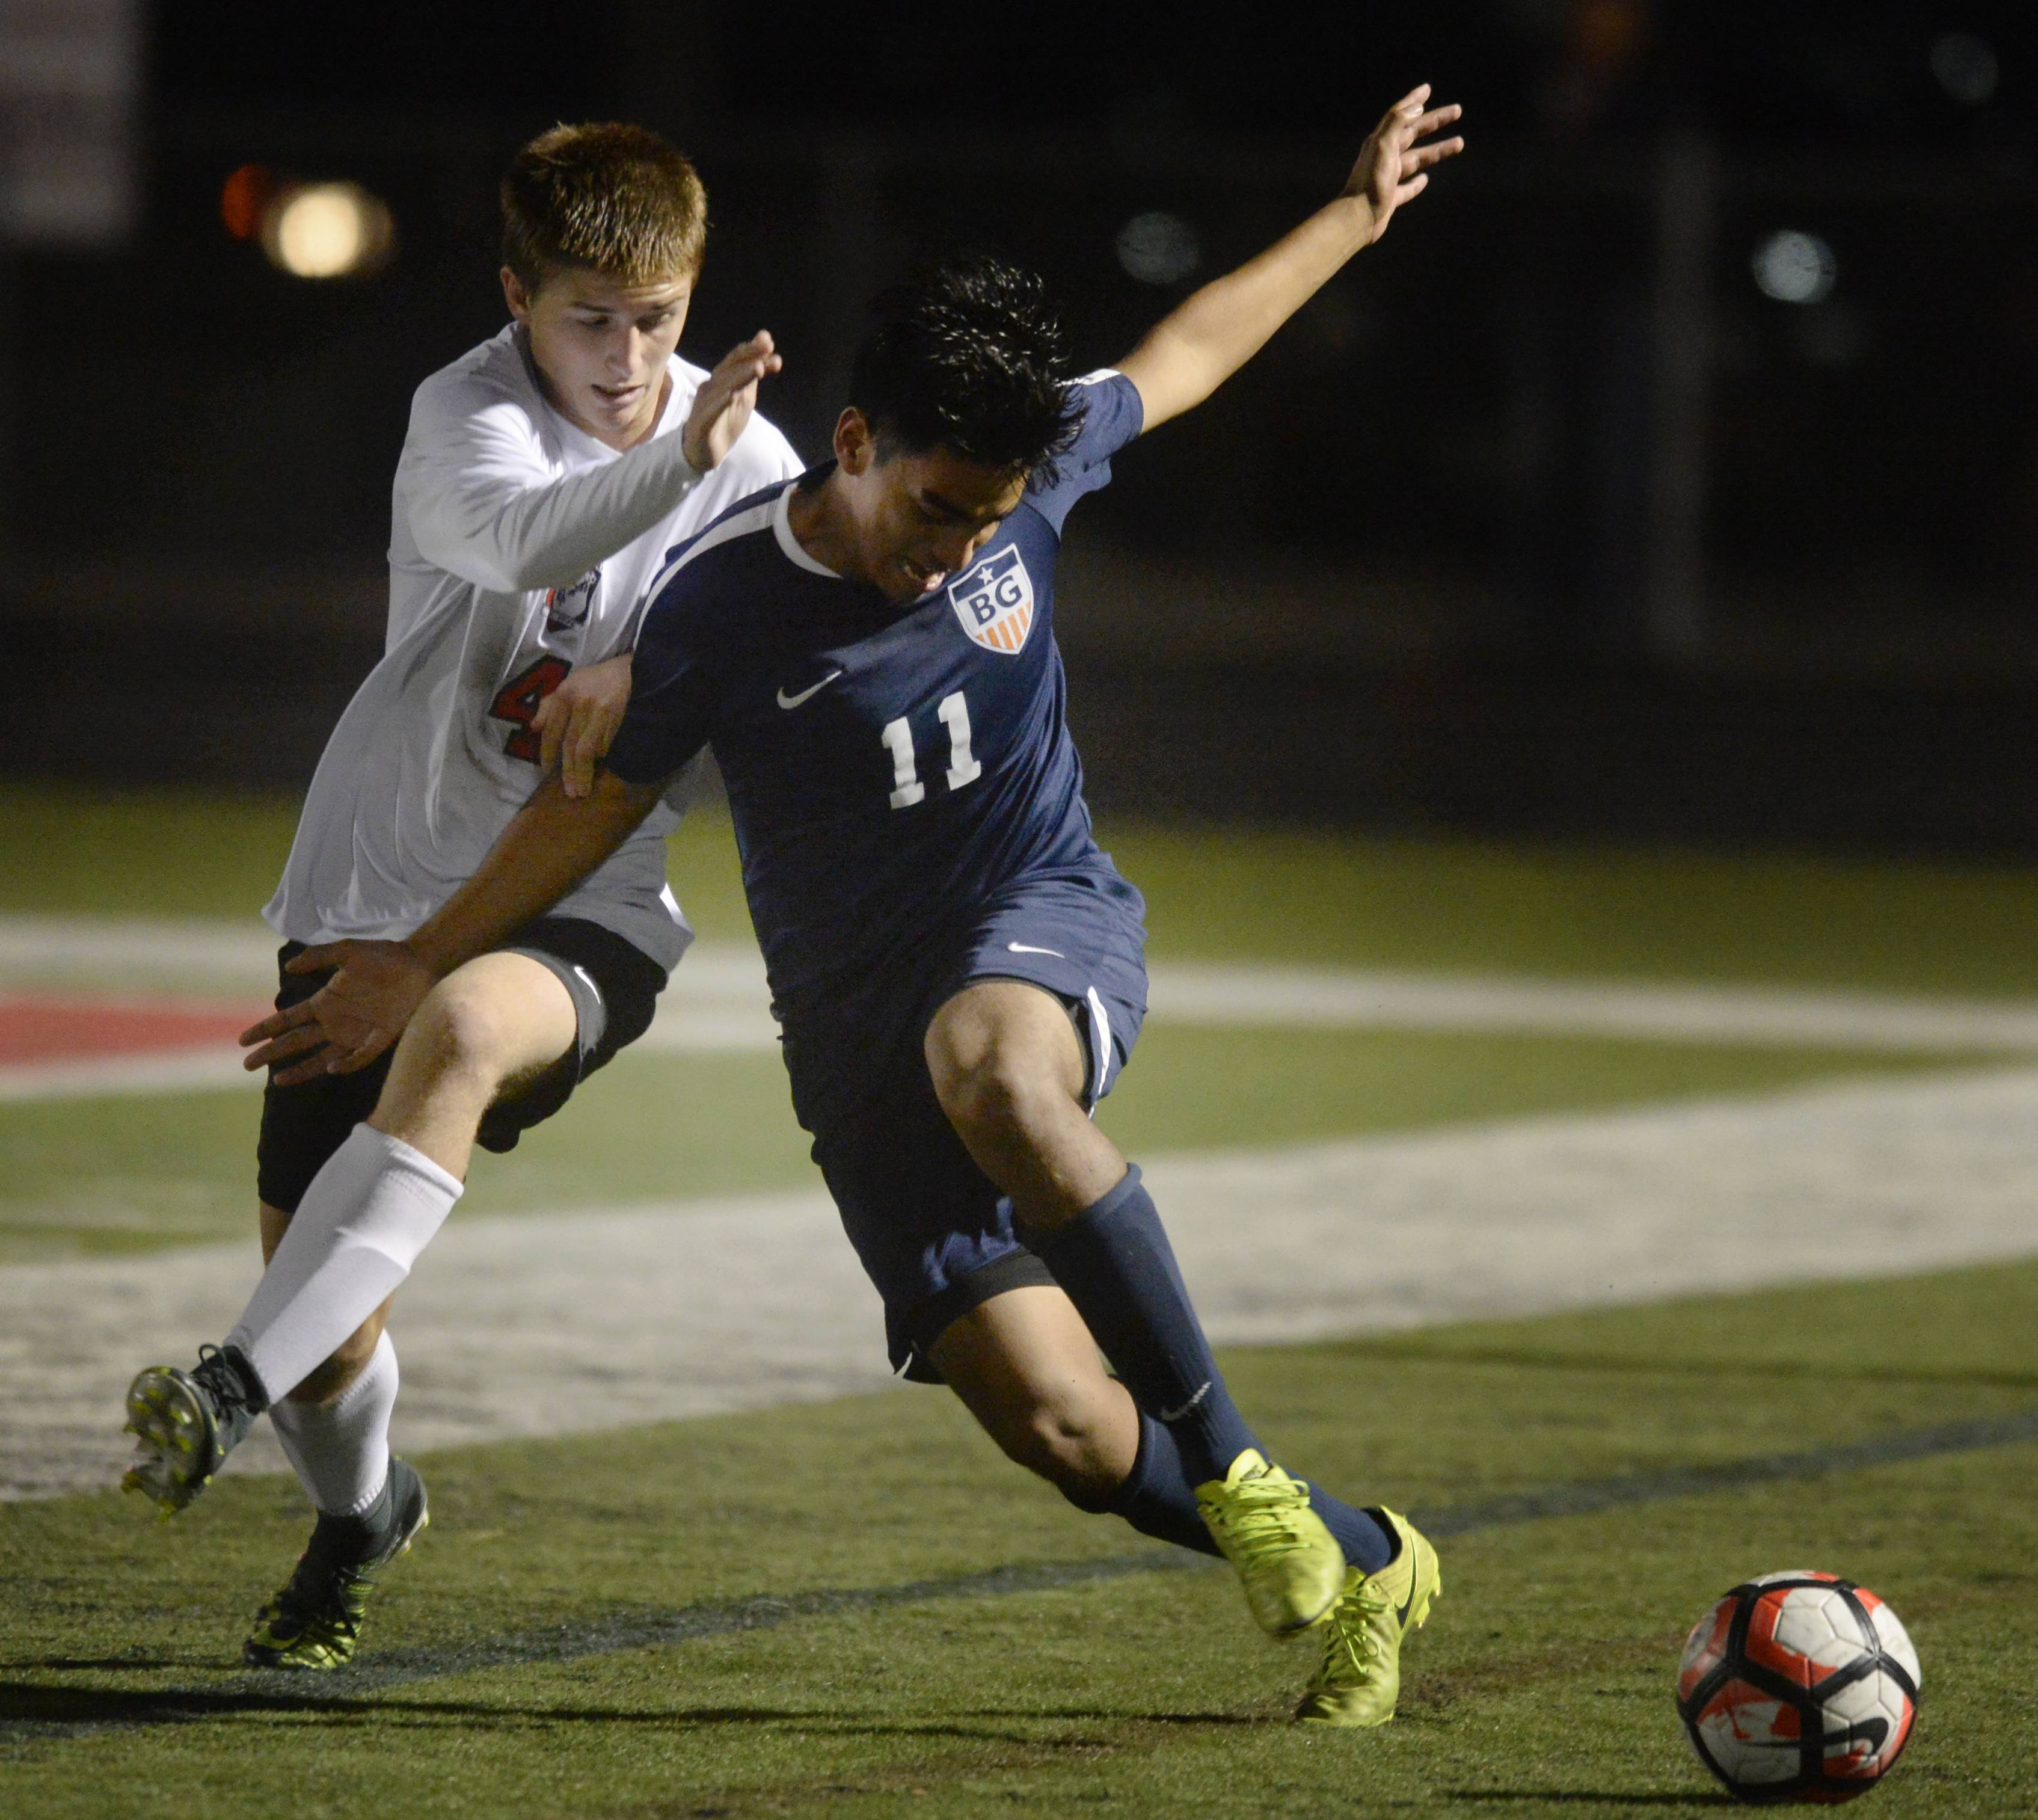 Barrington's Connor Delahunt battles Manny Mazariegos of Buffalo Grove in the MSL boys soccer championship game at Barrington.